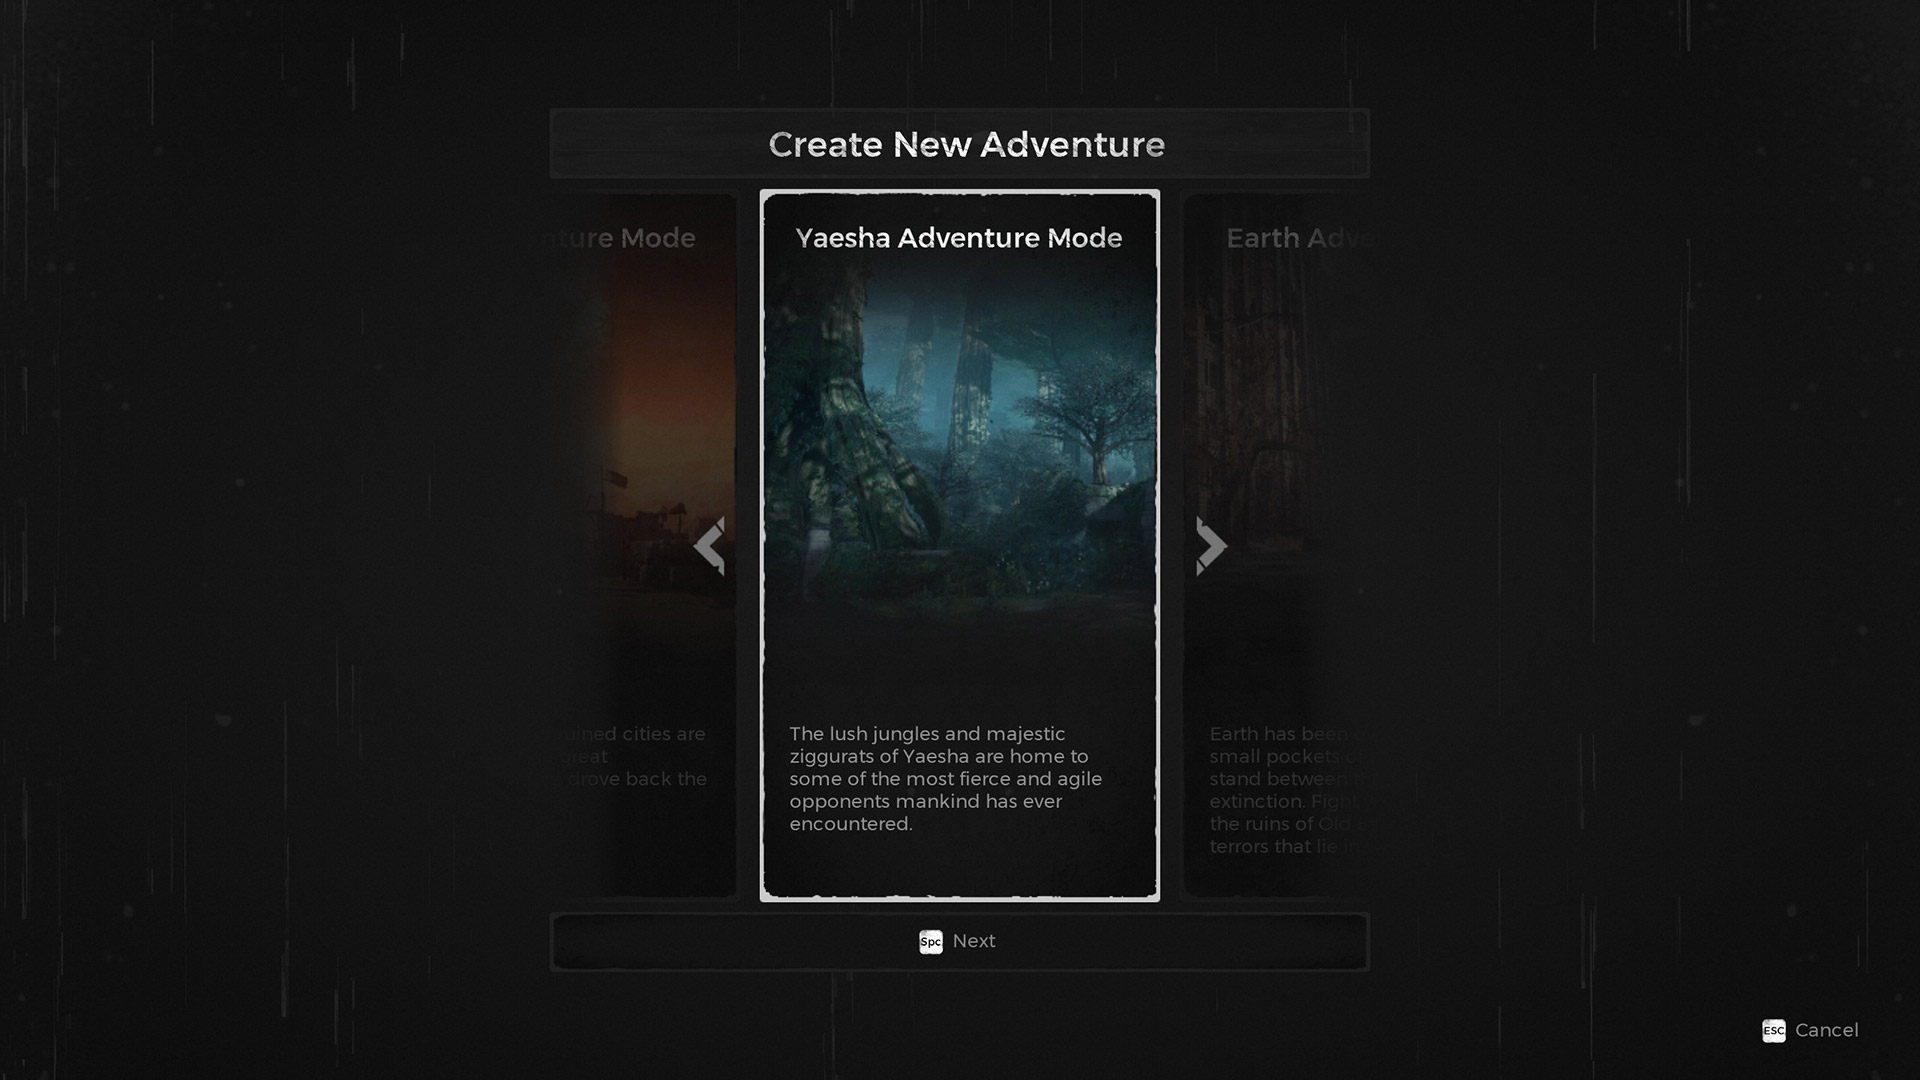 Adventure Mode in Remnant: From the Ashes